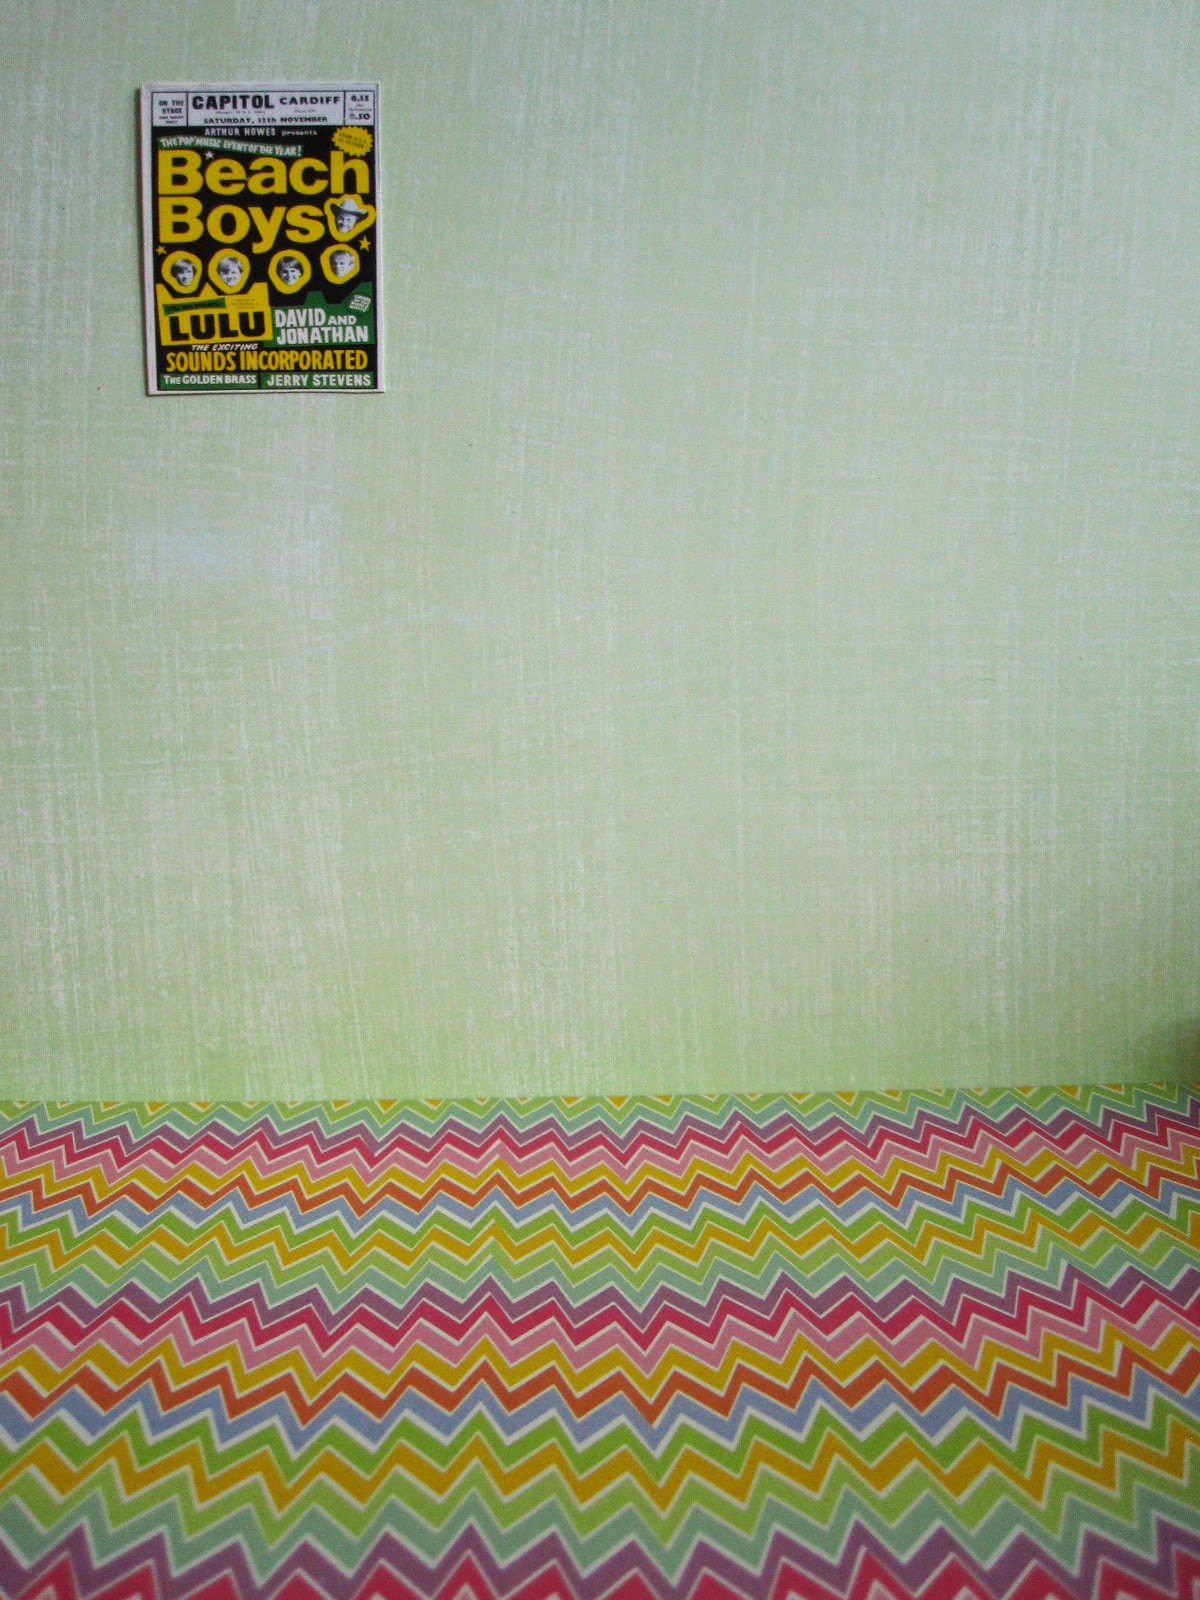 Bright 1960s Beach Boys poster on a green wall with a bright zig zag-patterned floor.